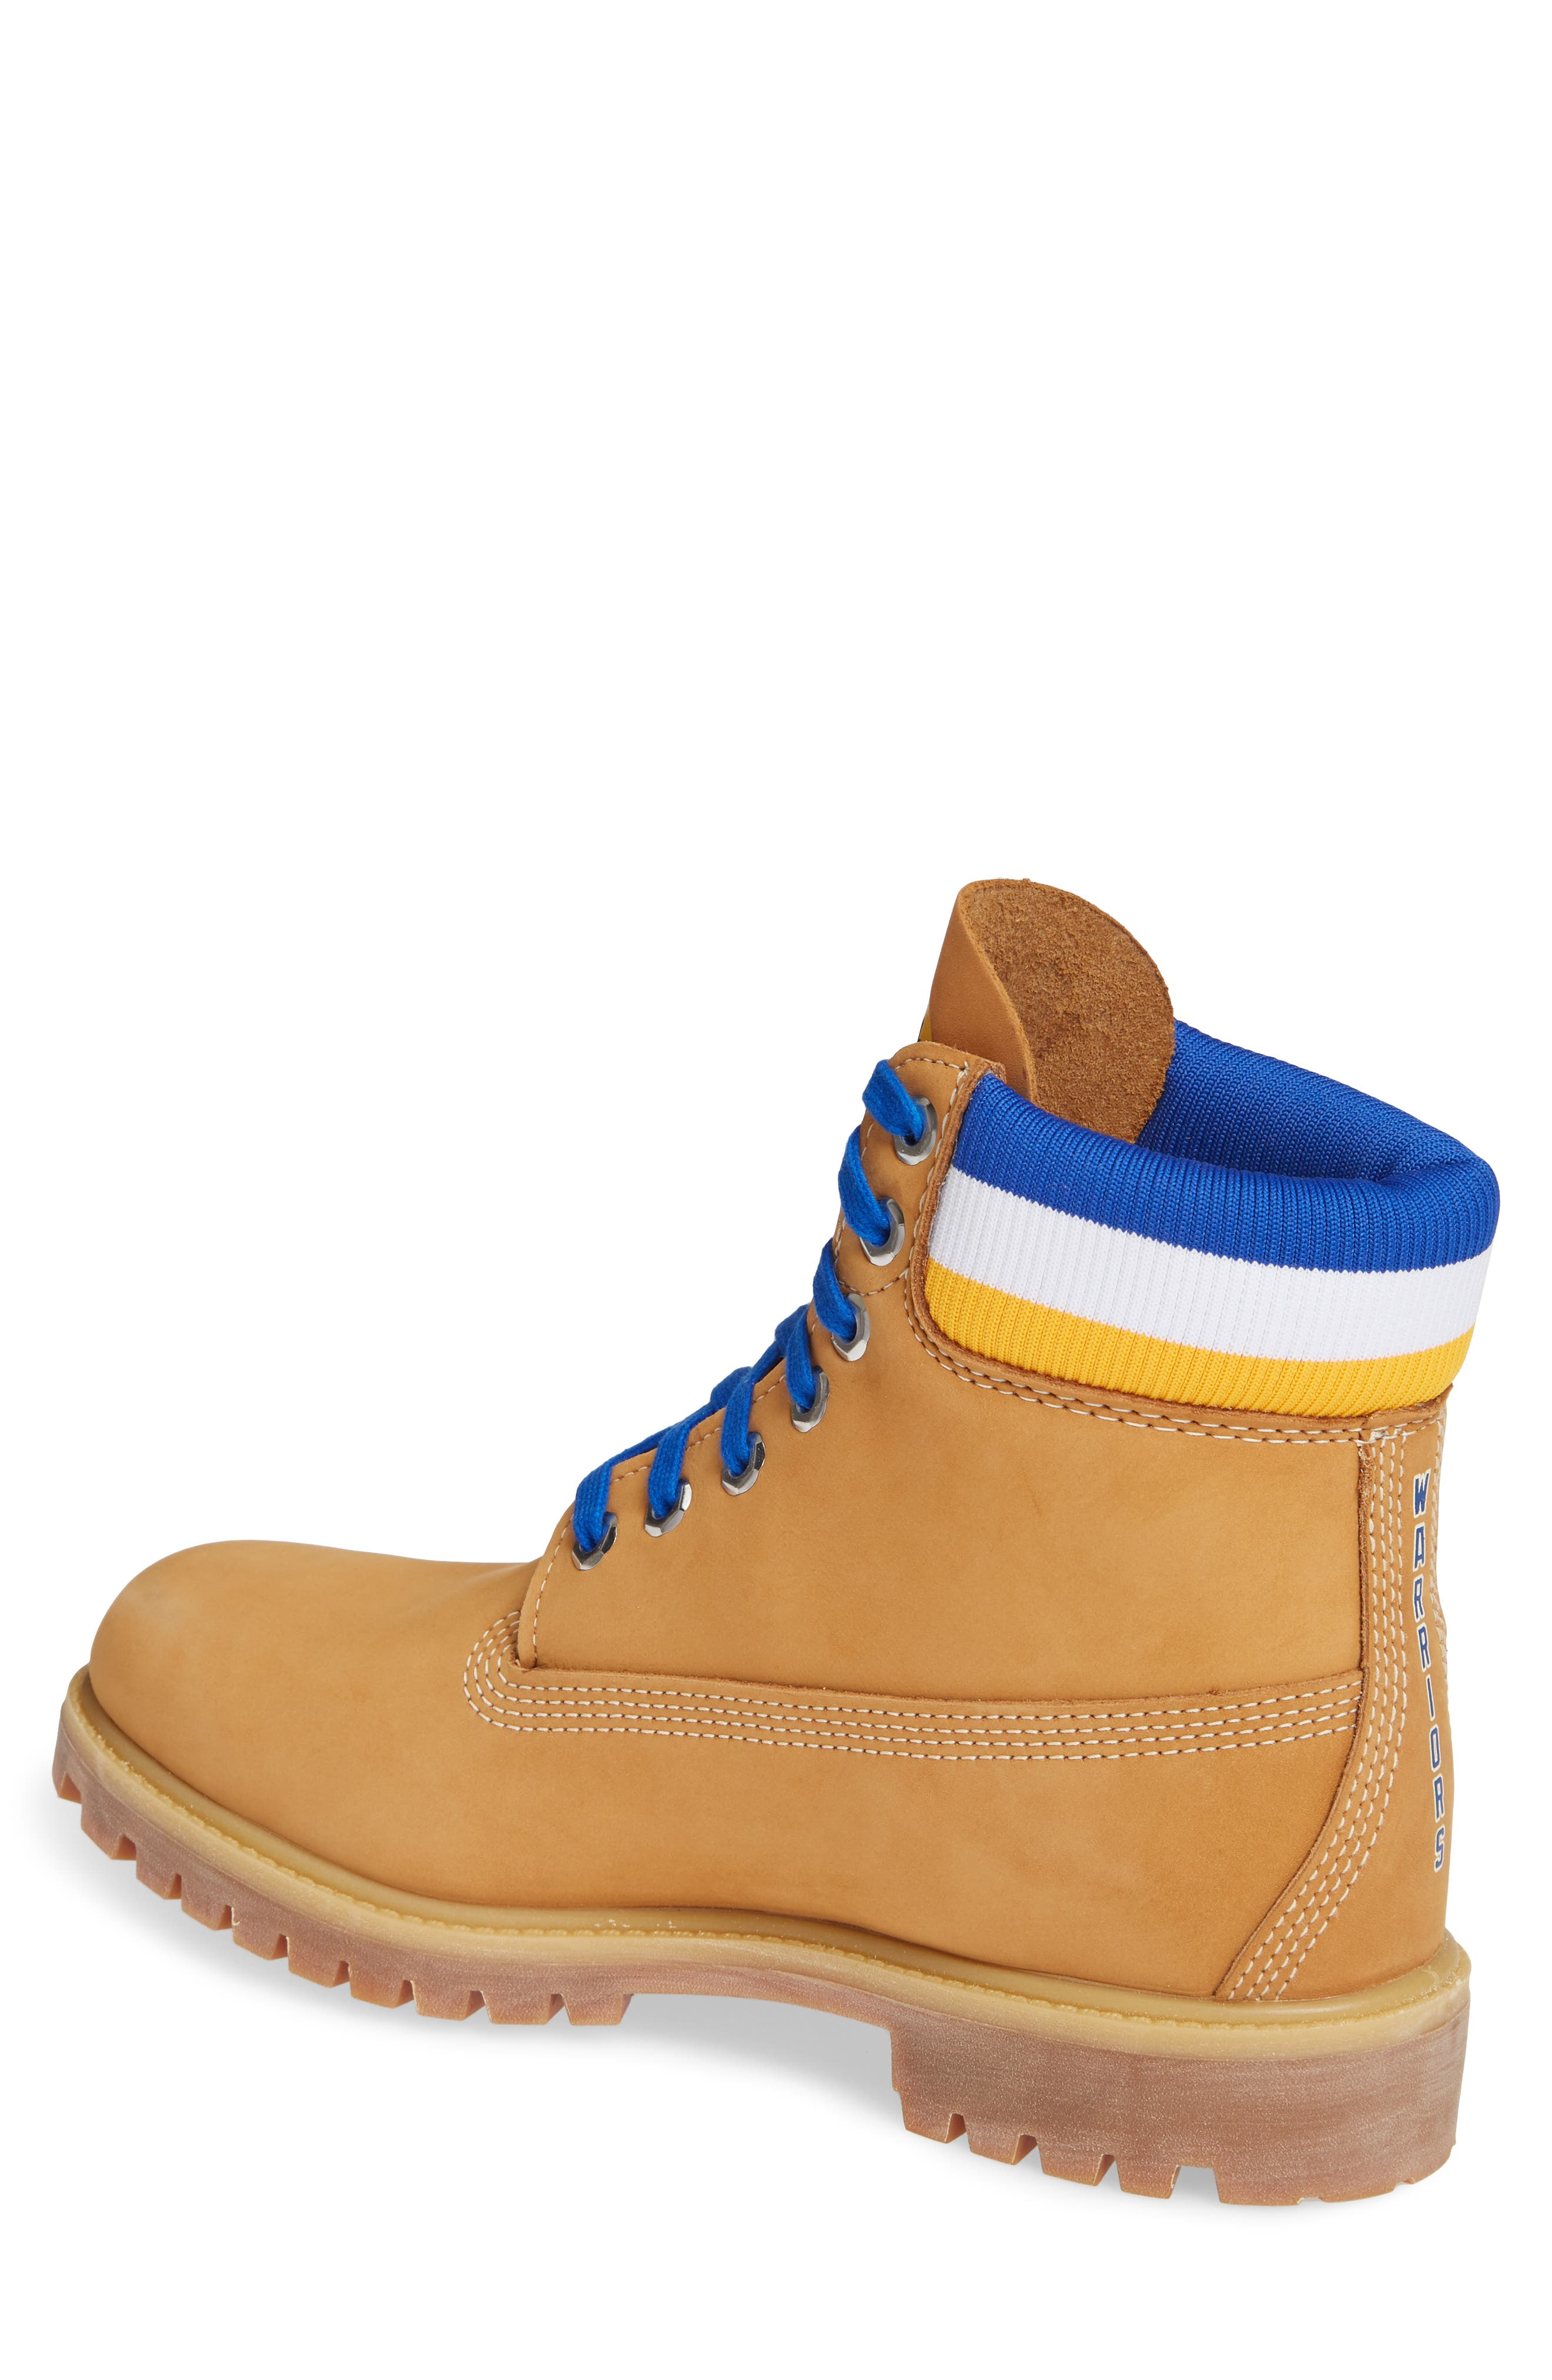 TIMBERLAND, Premium NBA Collection Boot, Alternate thumbnail 2, color, WHEAT NUBUCK/ GOLDEN STATE